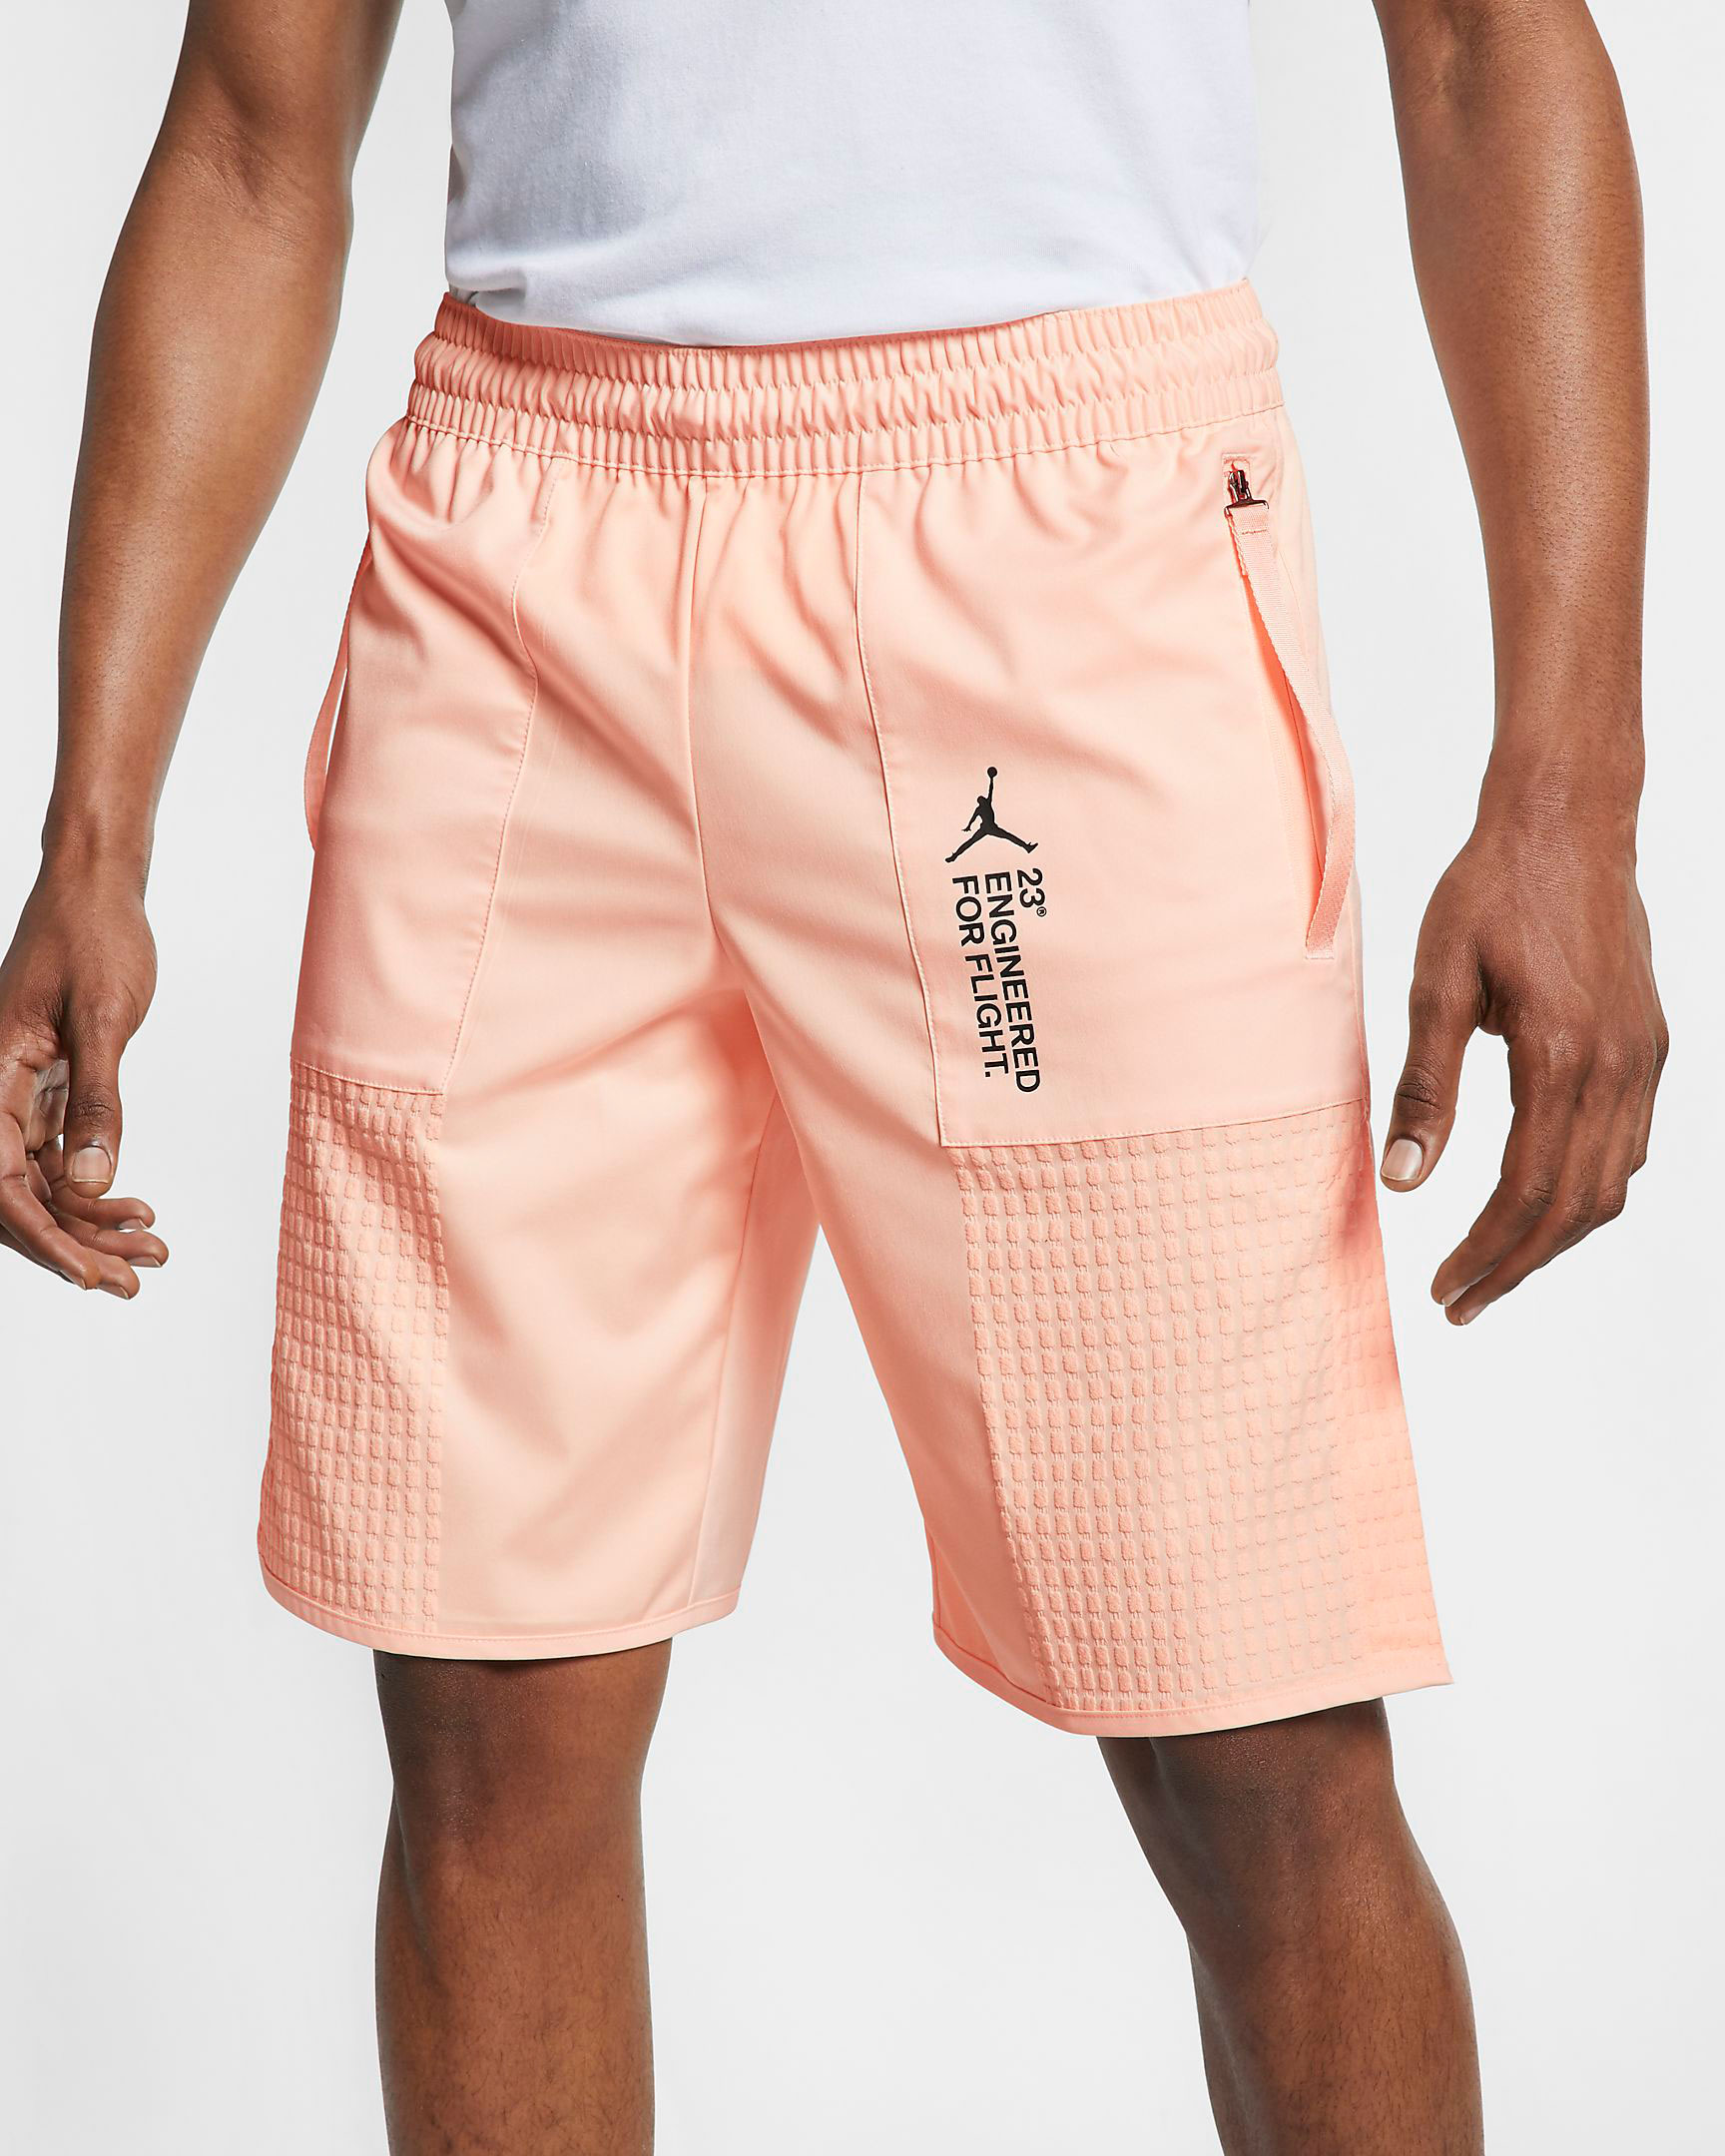 9c81c83ac90606 Jordan 23 Engineered Crimson Tint Shorts